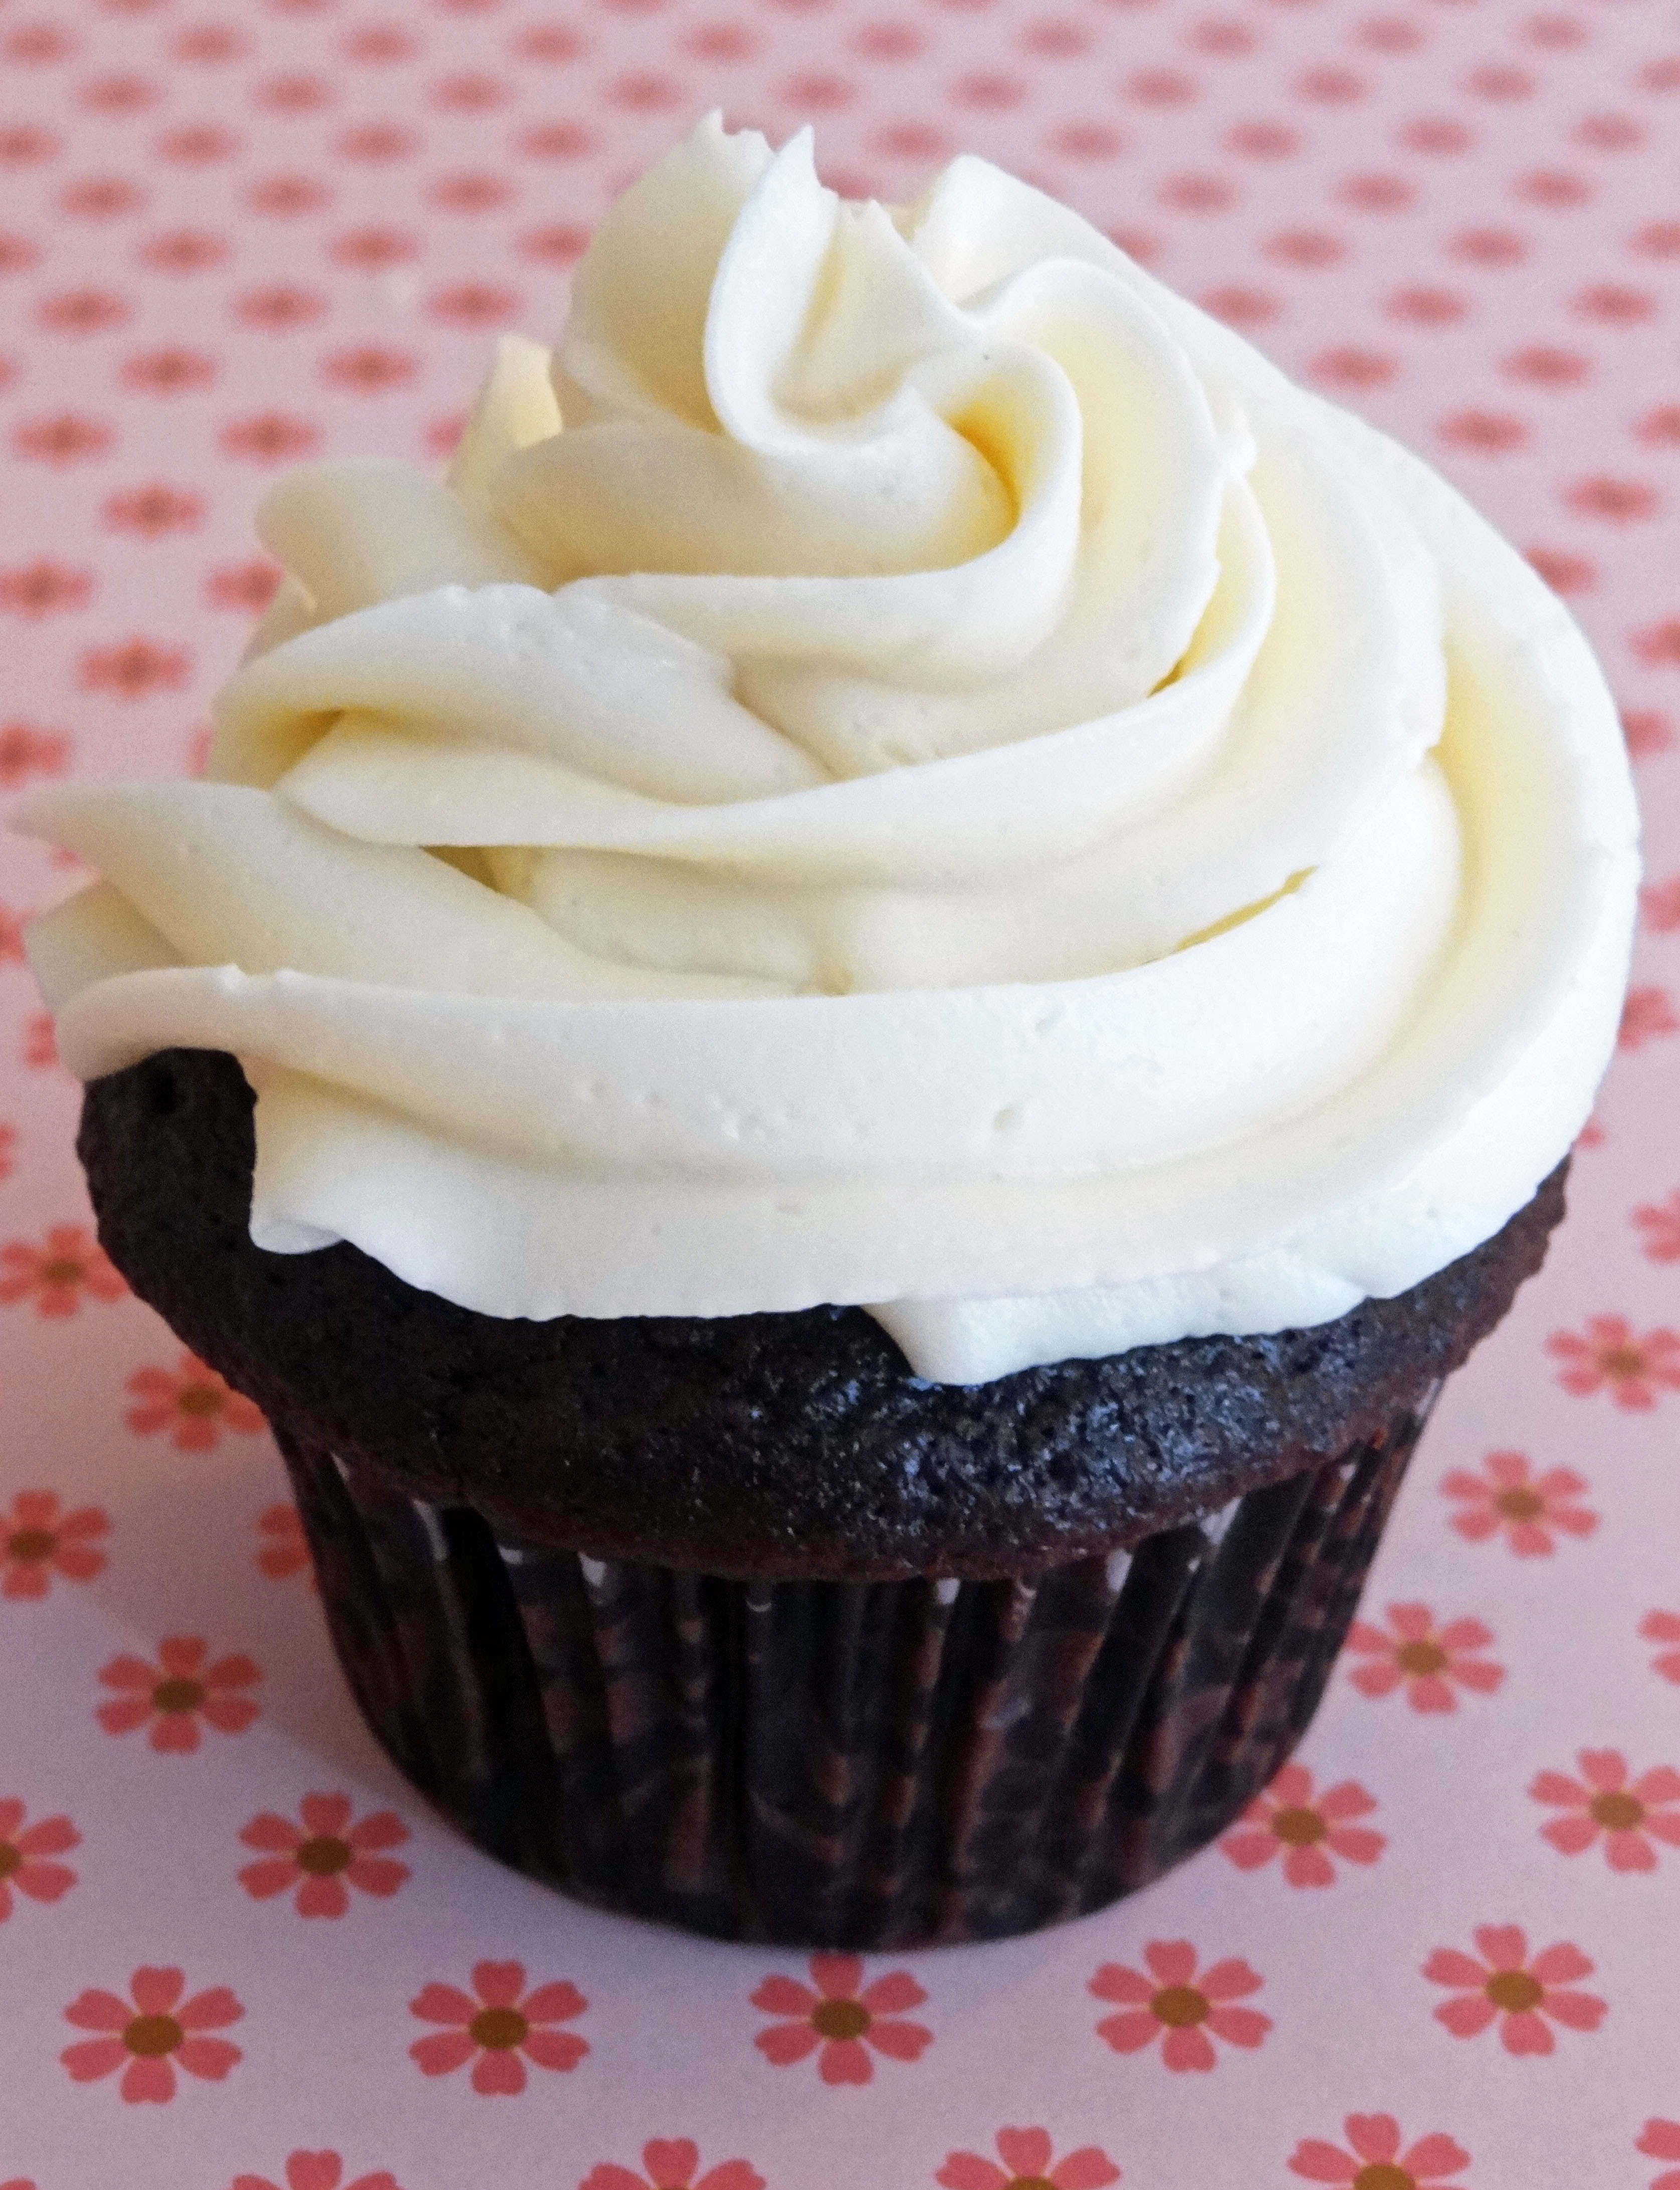 10 Photos of Icing Cupcakes With Brown